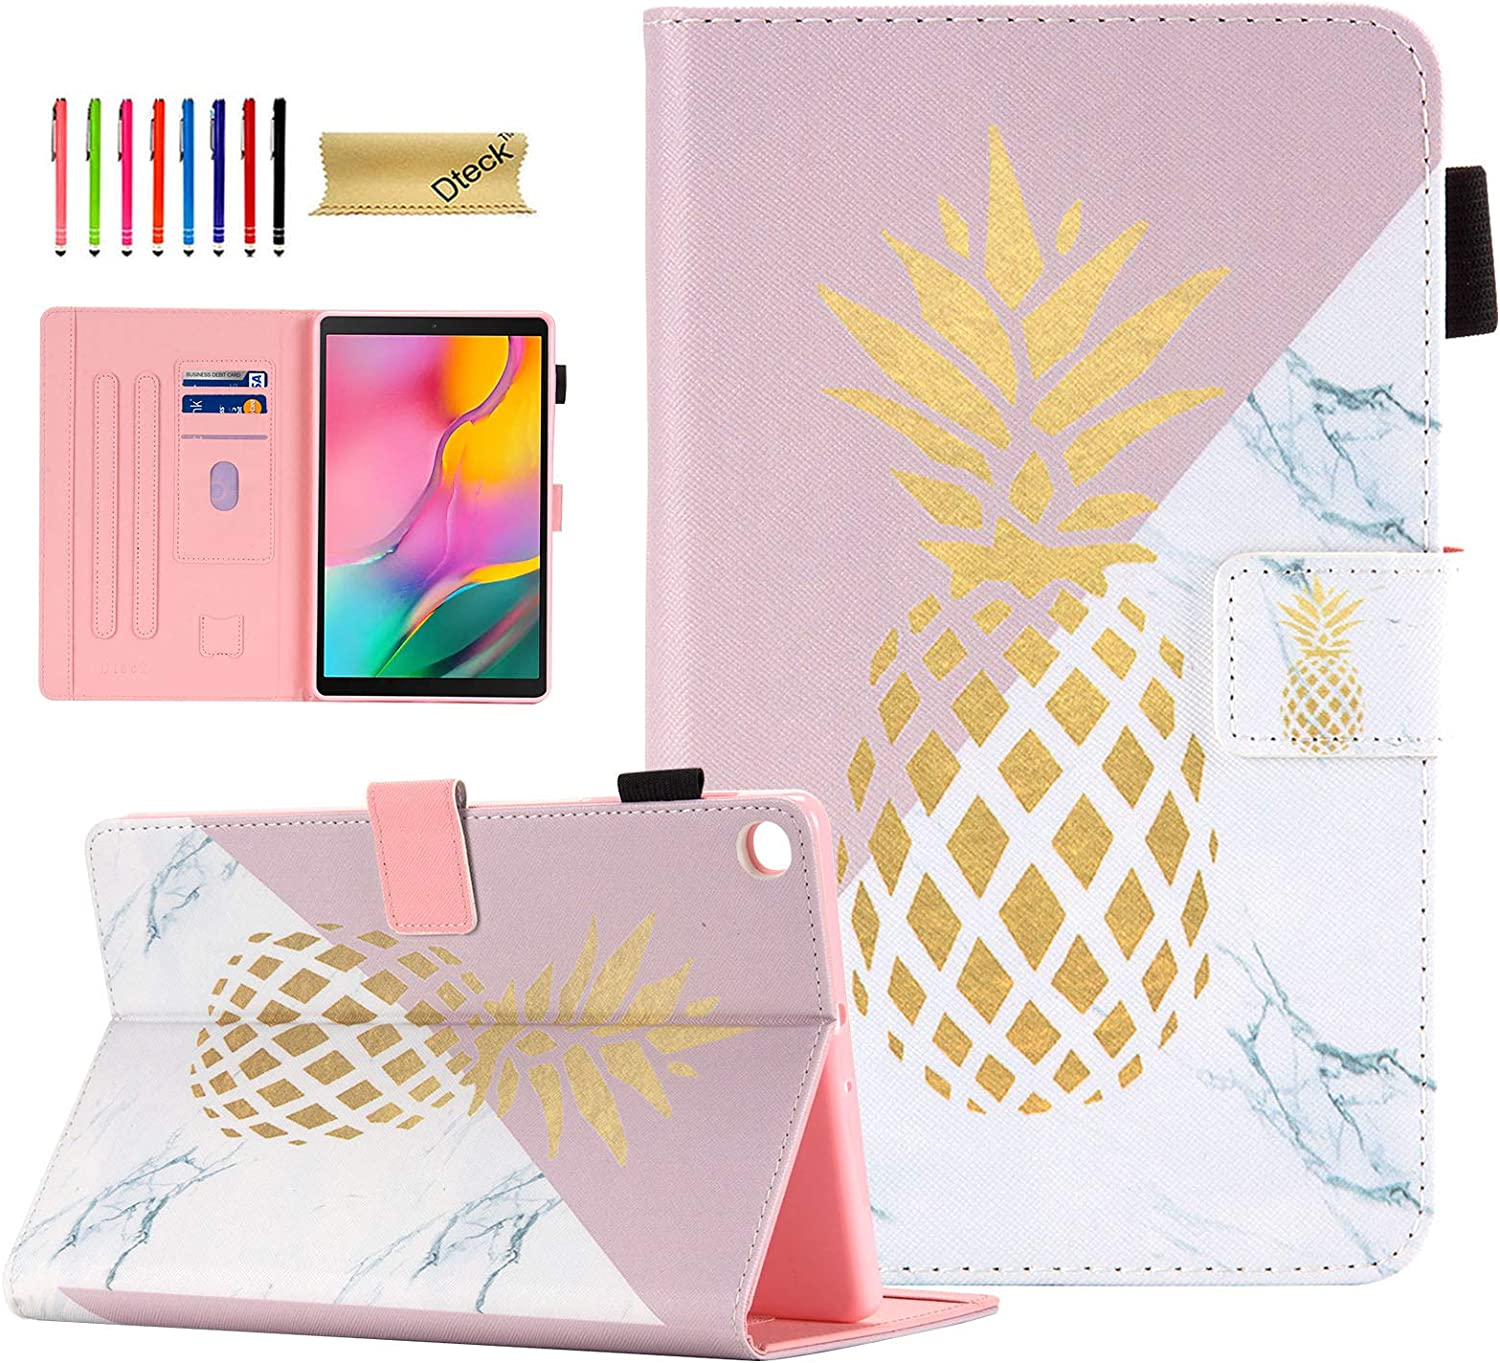 SM-T510 Case for Samsung Galaxy Tab A 10.1 2019 Case, Dteck Slim Fit Premium Leather Folio Stand Protective Magnetic Case with Card Slots for Samsung Tab A 10.1 inch SM-T510/T515, Marble Pineapple